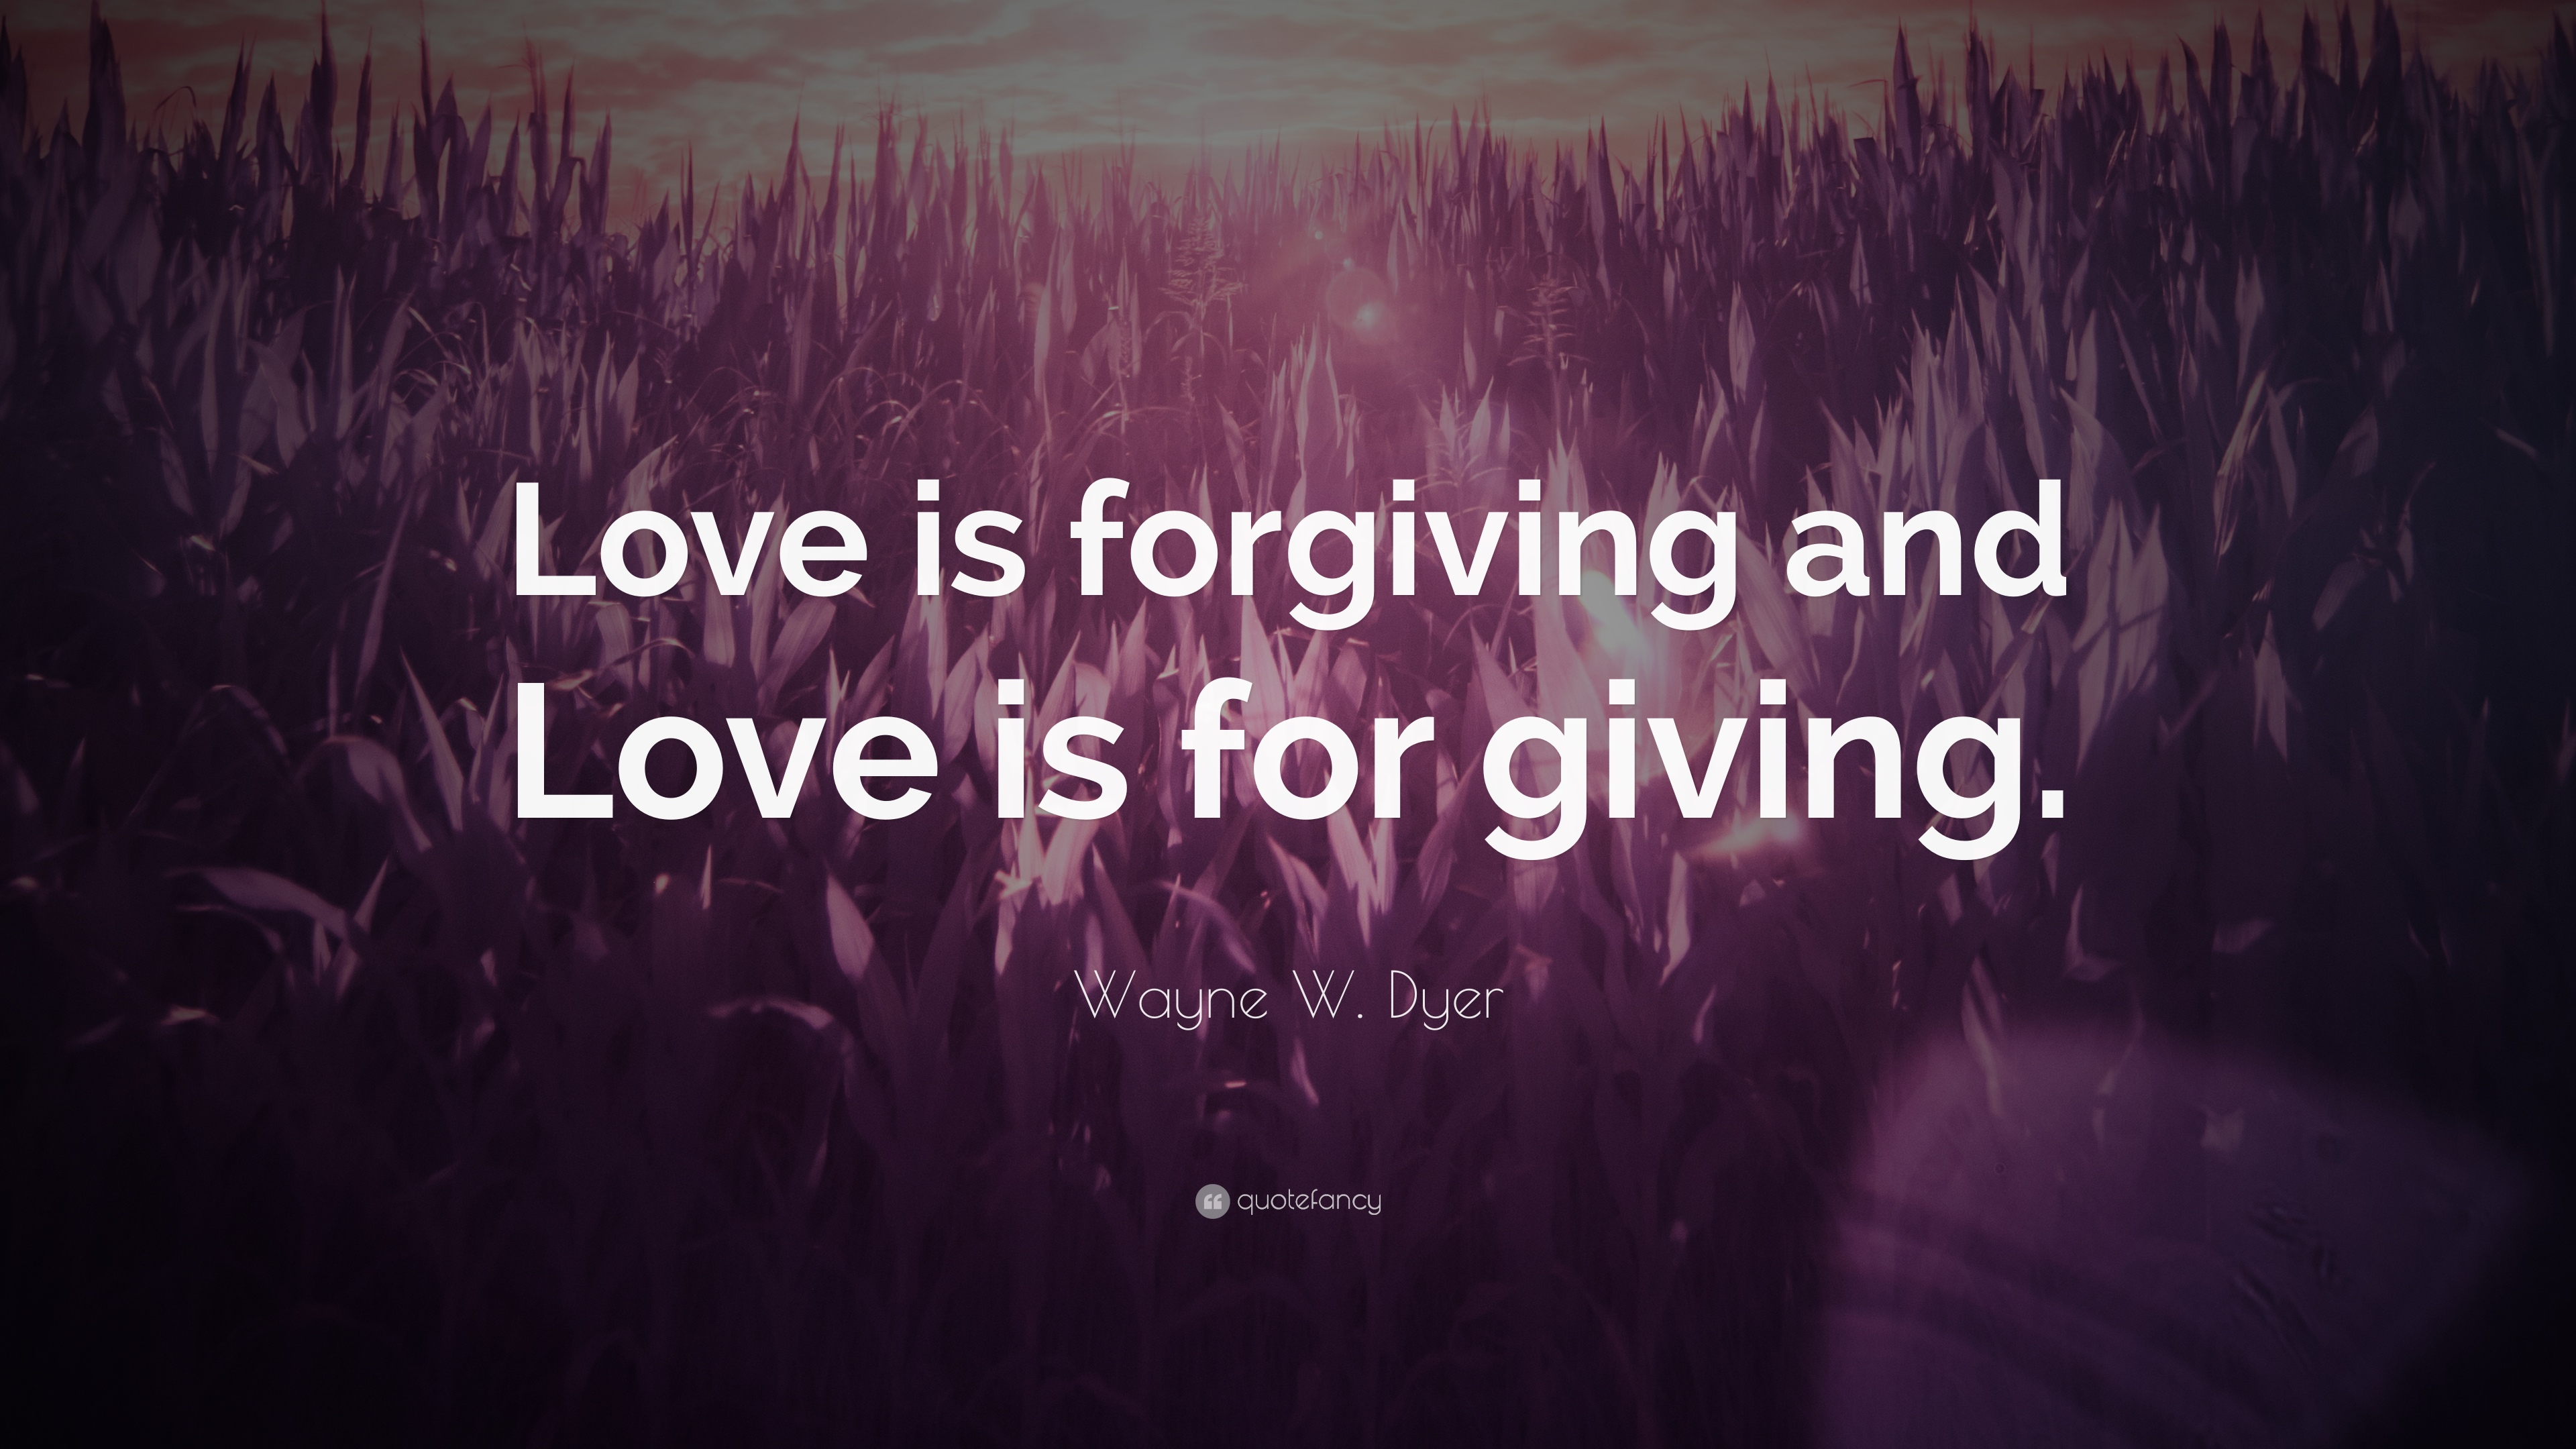 Wayne W Dyer Quote Love Is Forgiving And Love Is For Giving 12